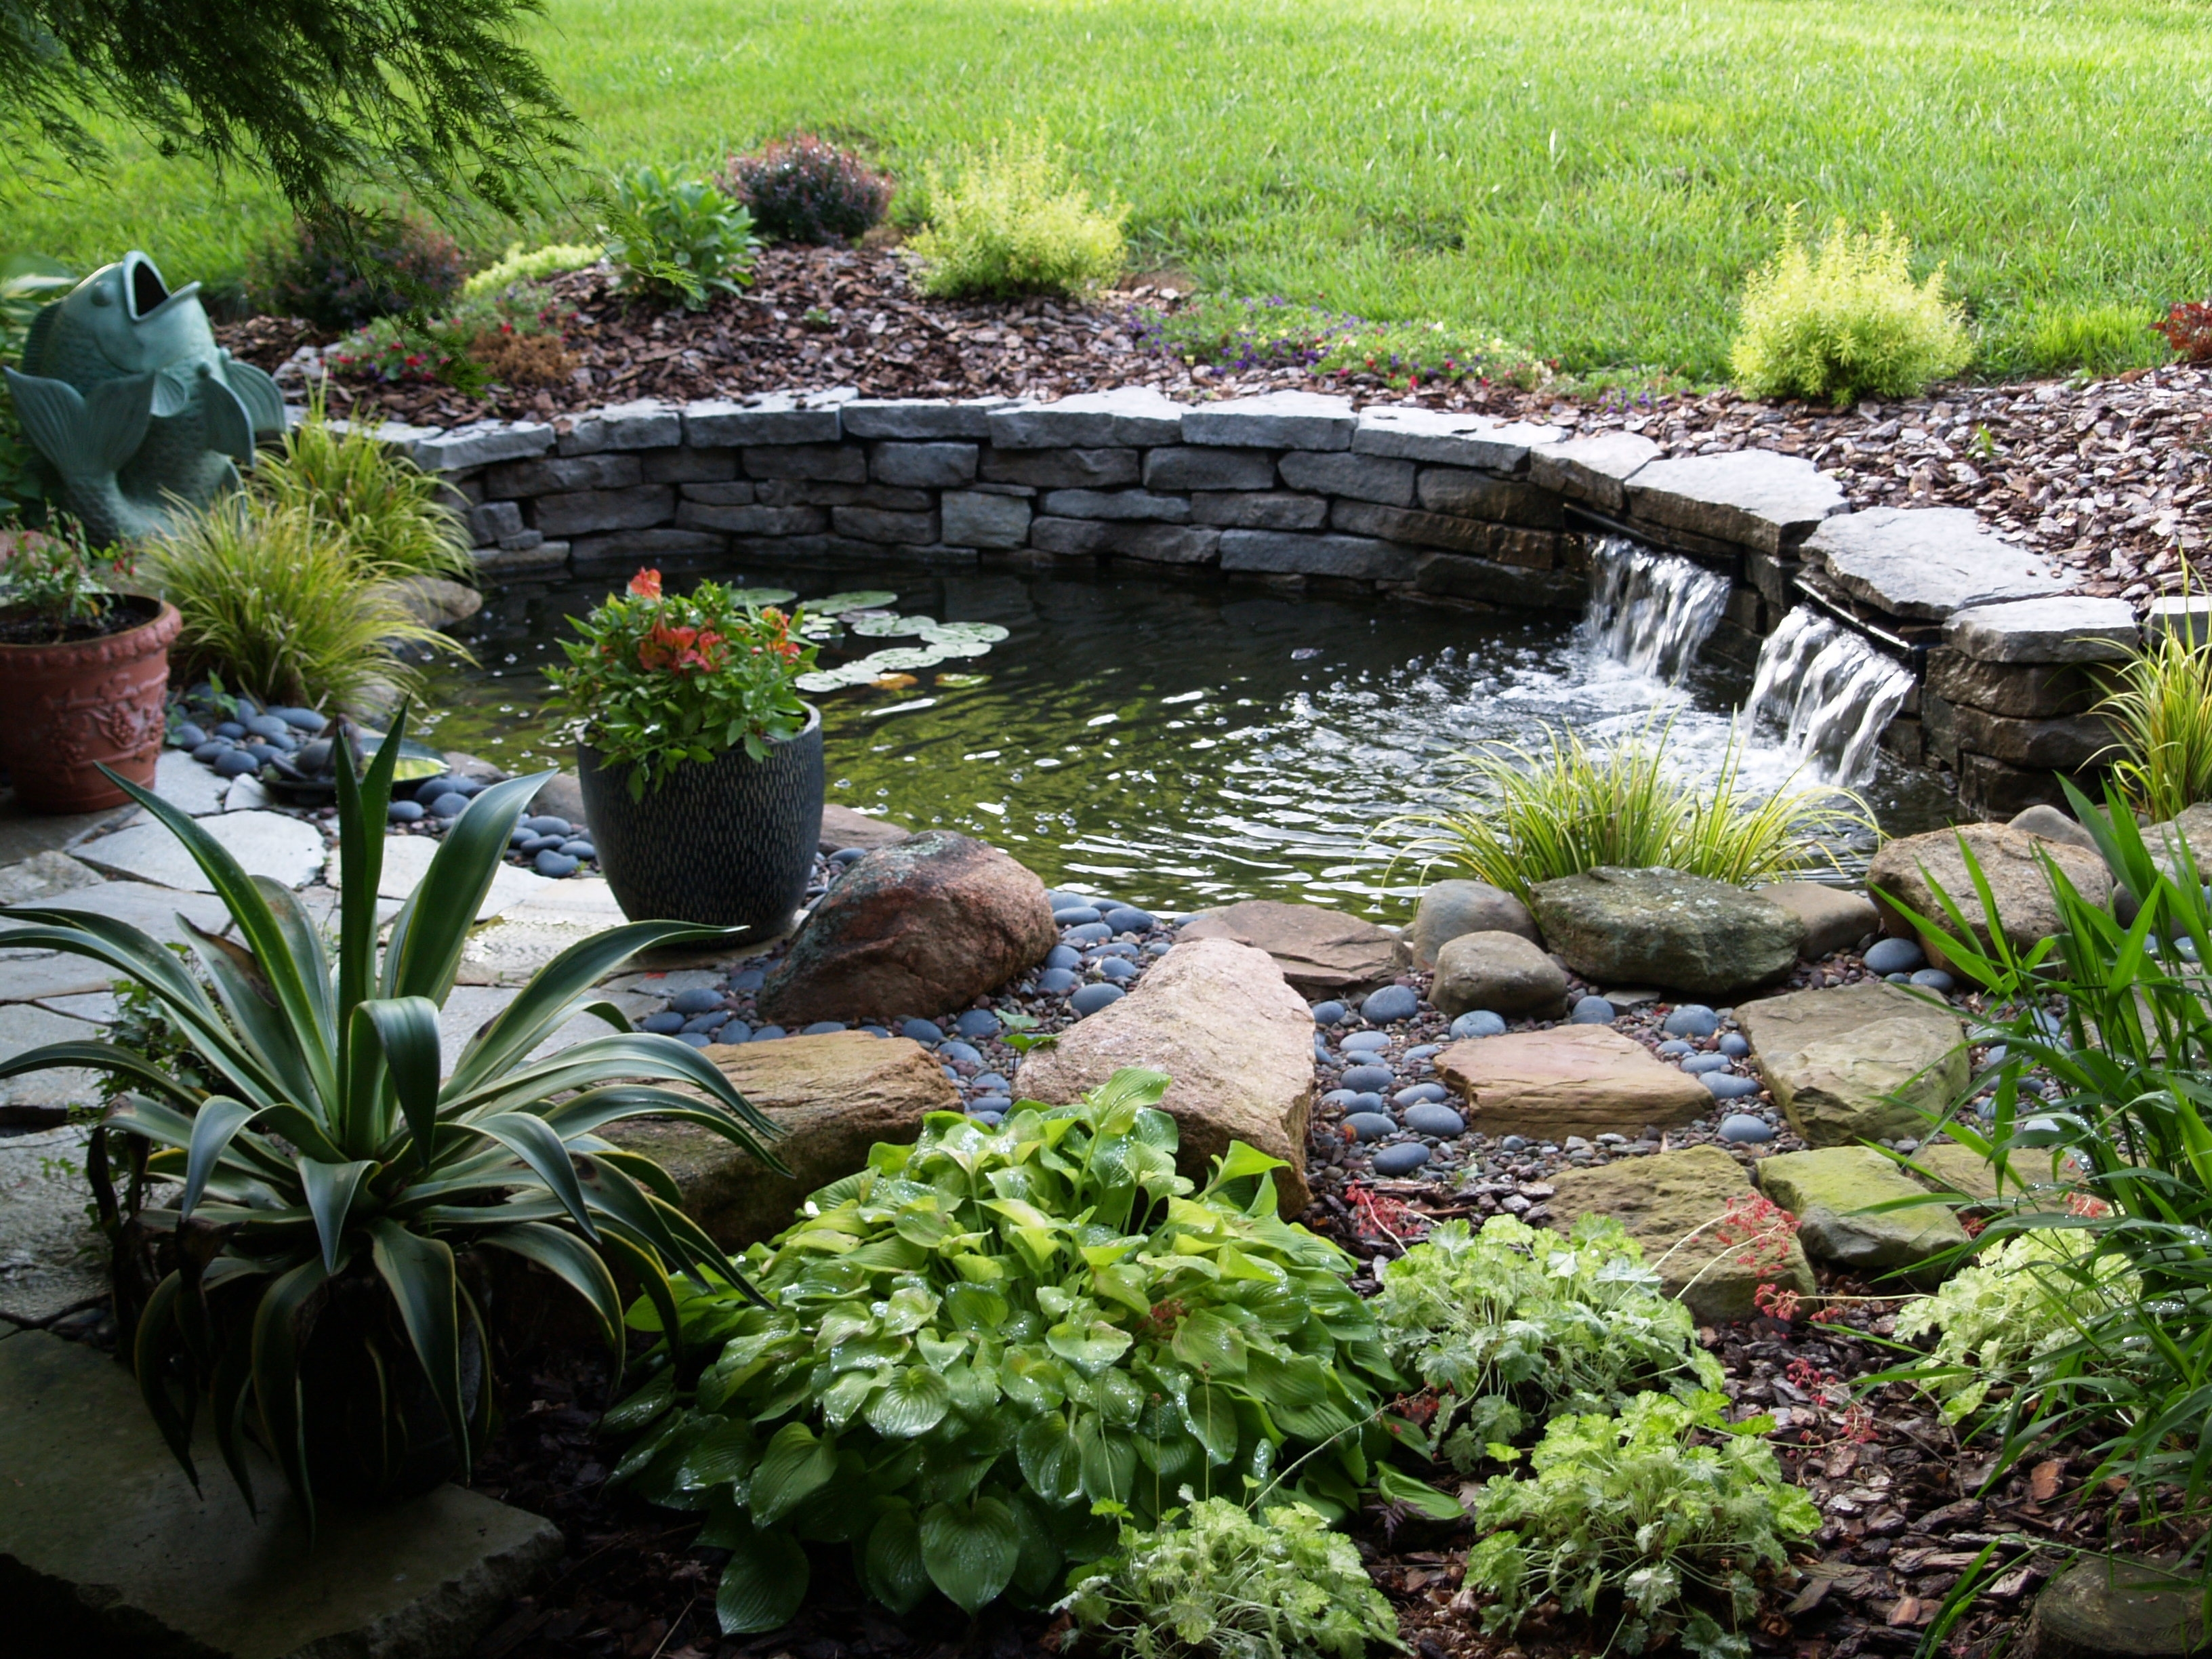 How To Build A Raised Pond In Your Garden - Clickhowto with regard to Backyard Garden With Pond